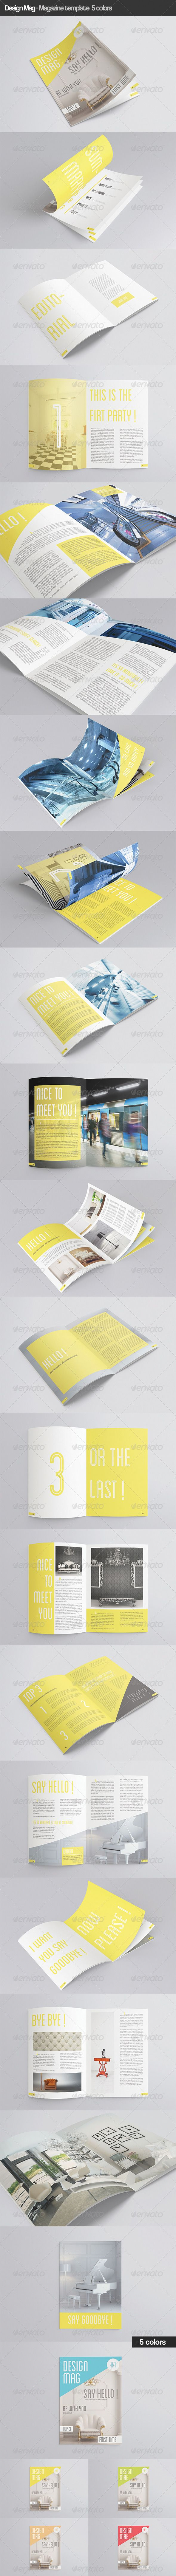 Design Mag 40 Pages InDesign Template Print by AuroreV In design